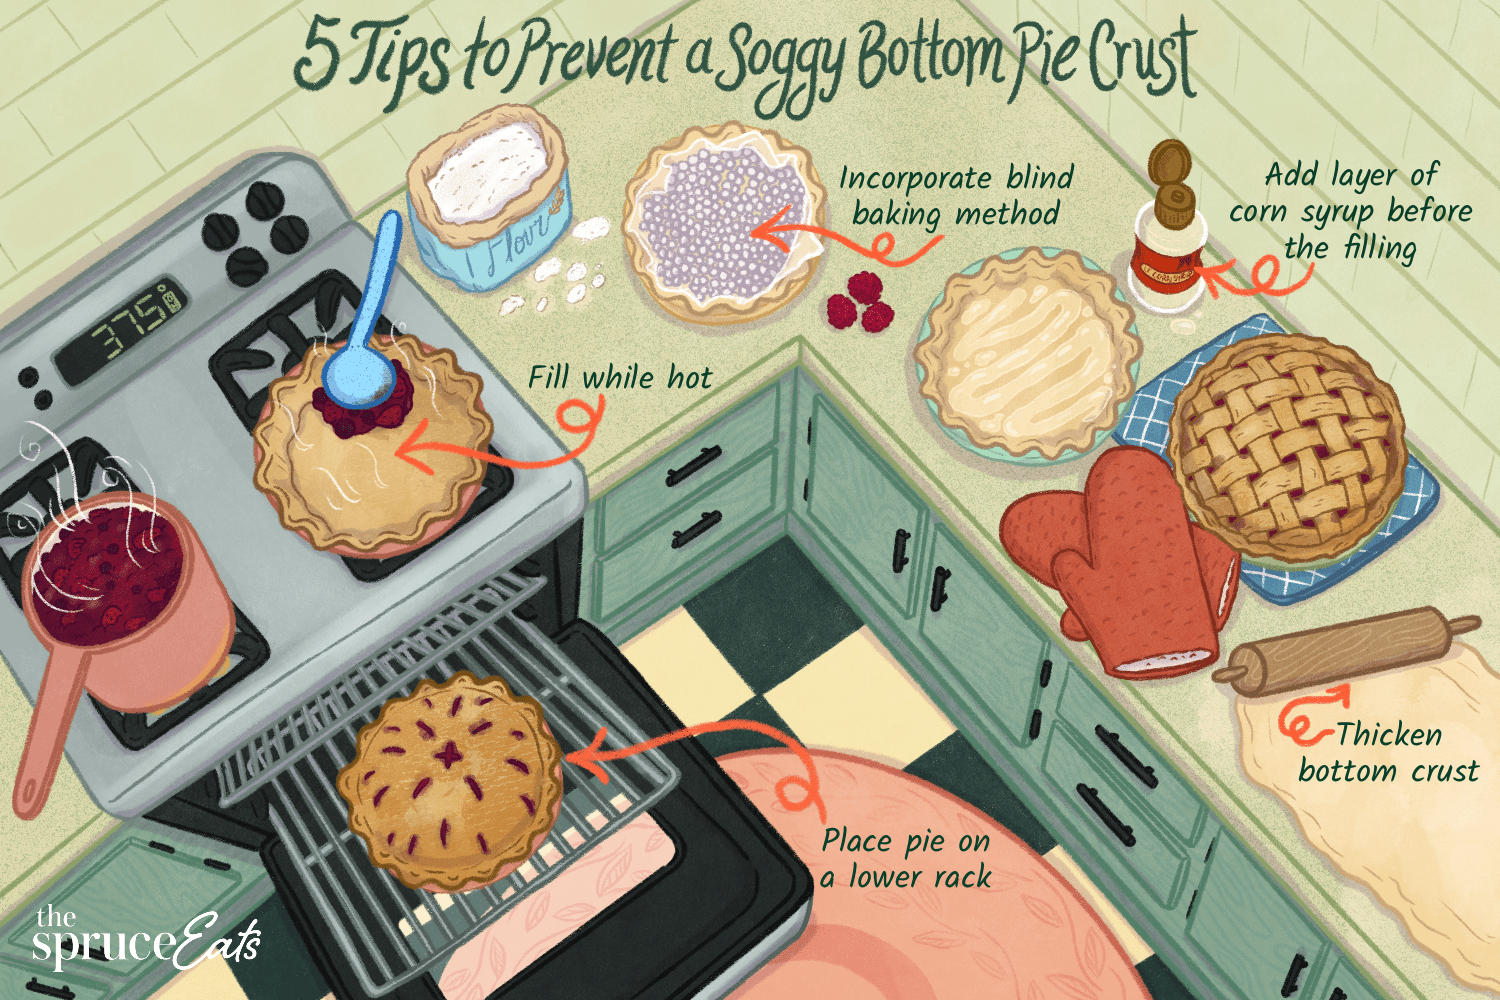 illustration with tips on preventing a soggy bottom pie crust